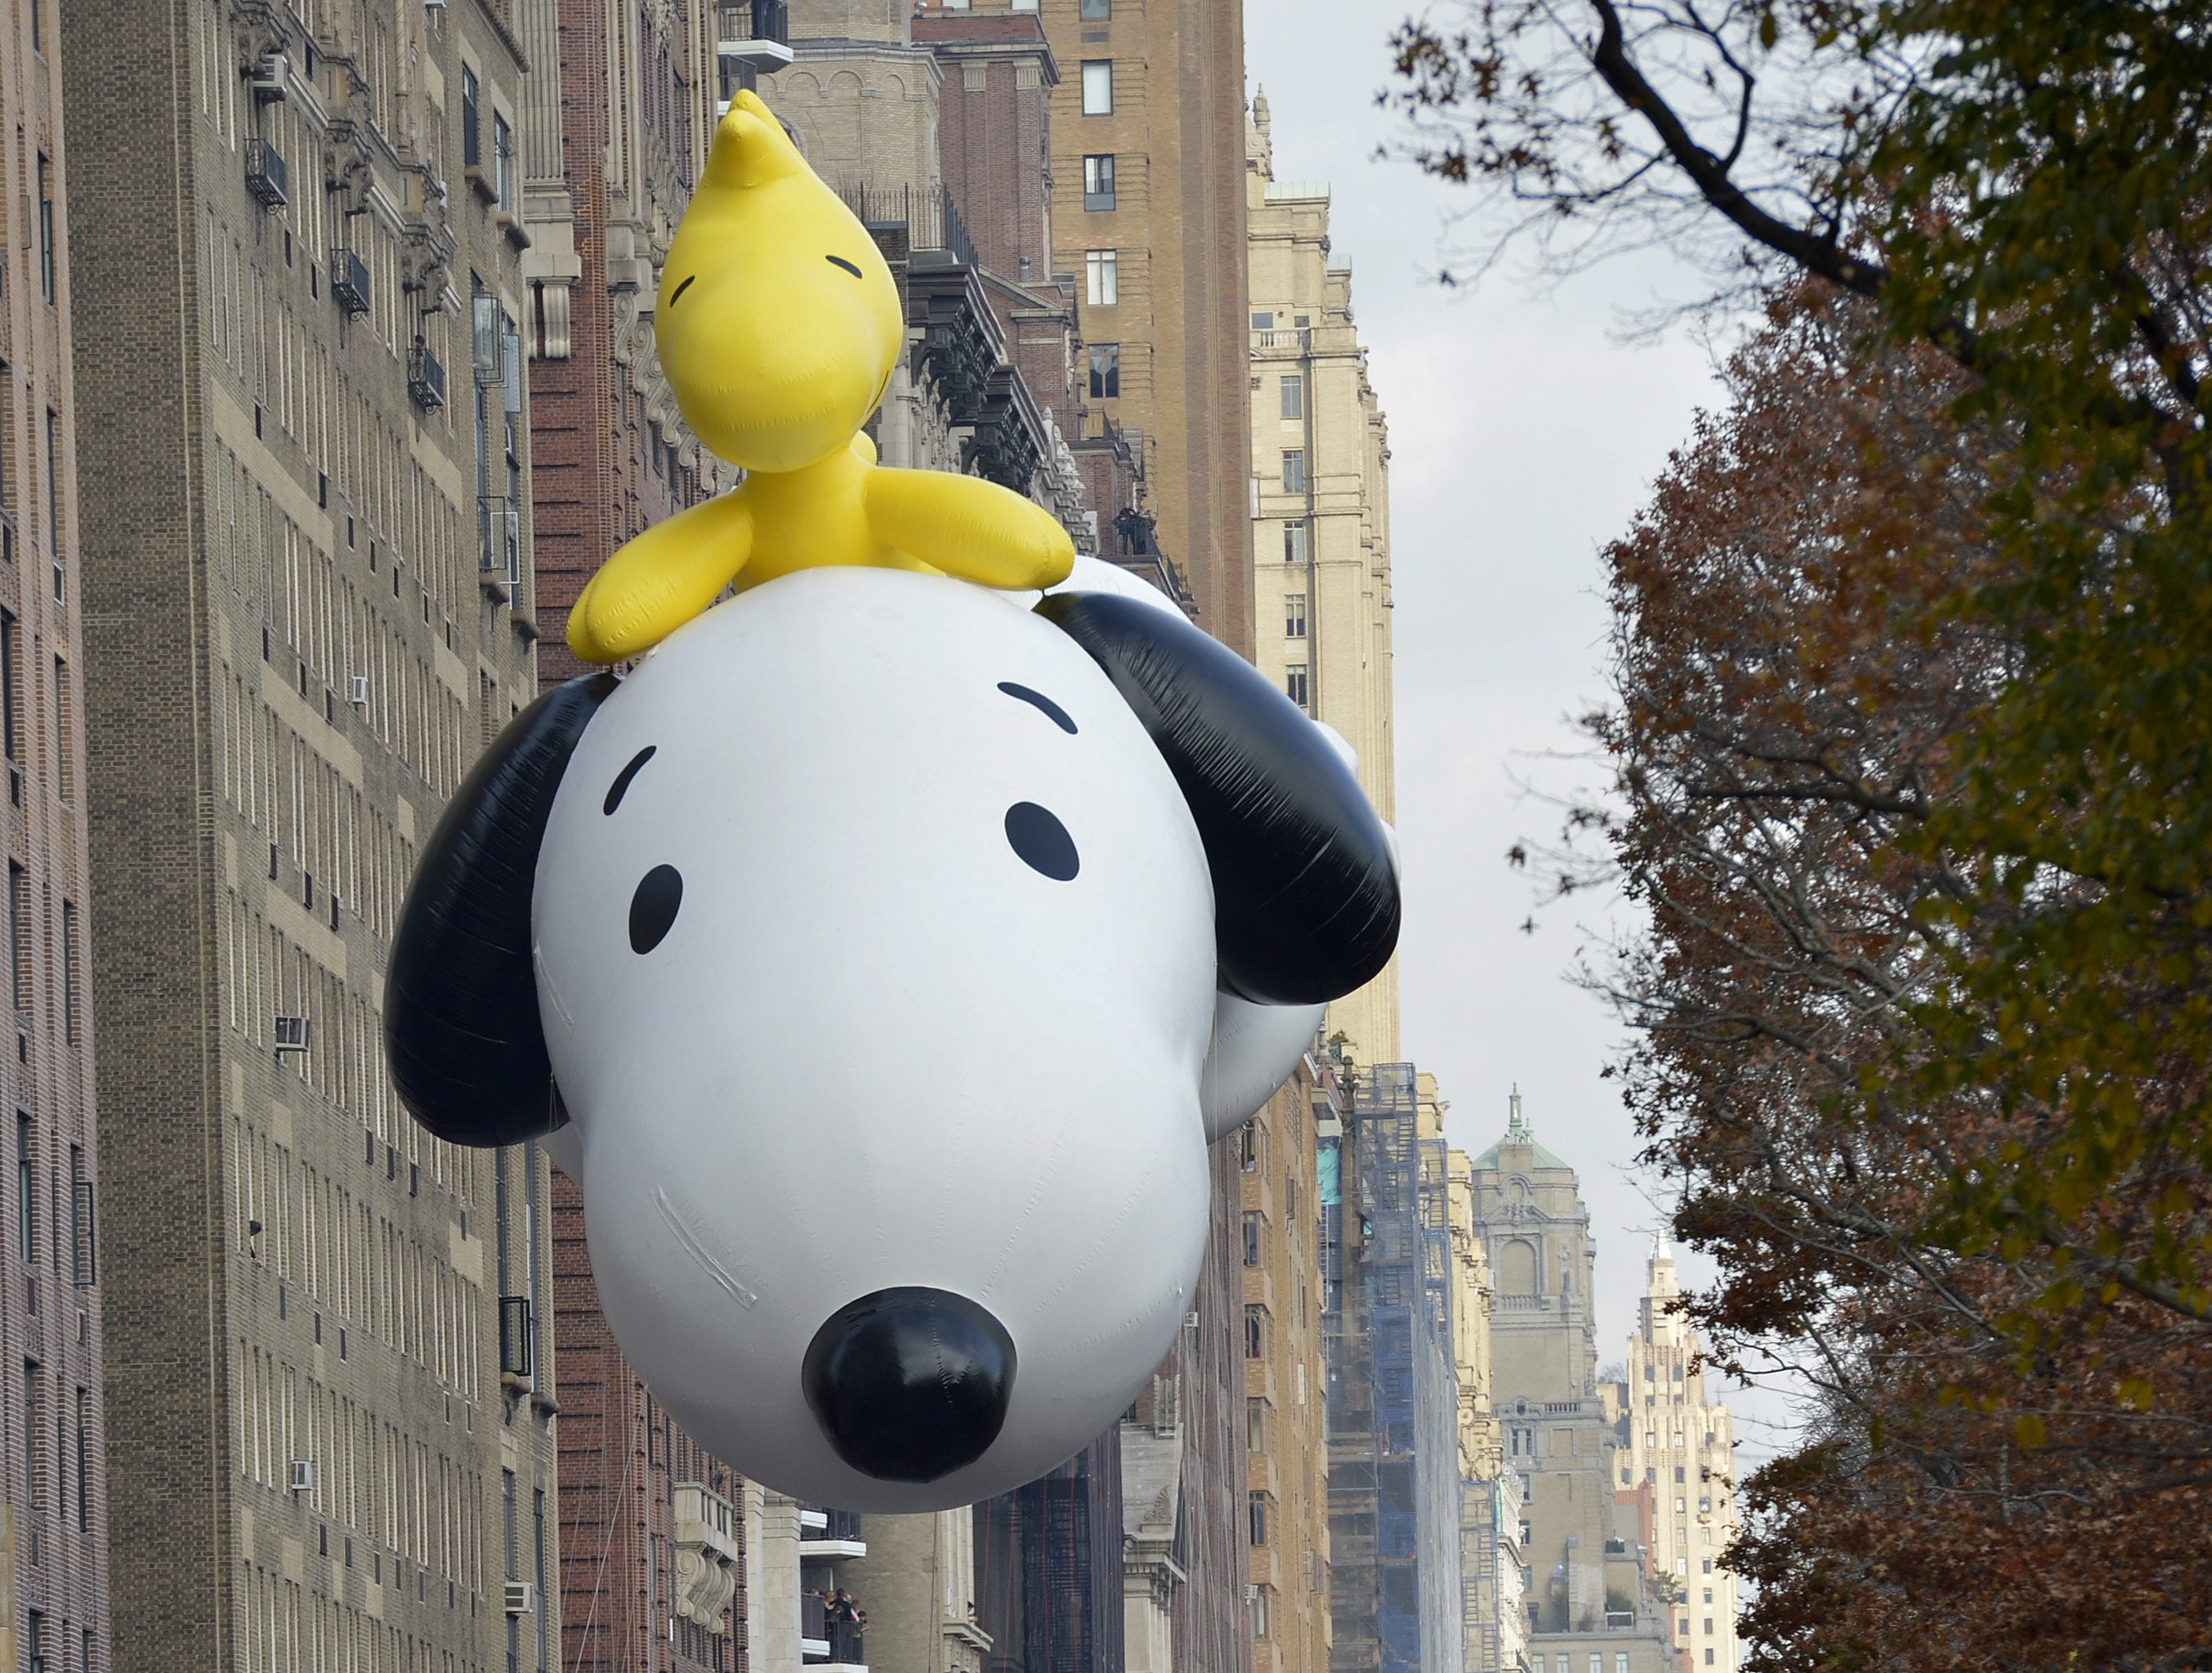 epa05043395 The Snoopy and Woodstock balloon floats down Central Park West during the 89th Macy's Thanksgiving Day Parade in New York, USA, 26 November 2015.  The annual parade, which began in 1924, features giant balloons of characters from popular culture floating above the streets of Manhattan.  EPA/PORTER BINKS